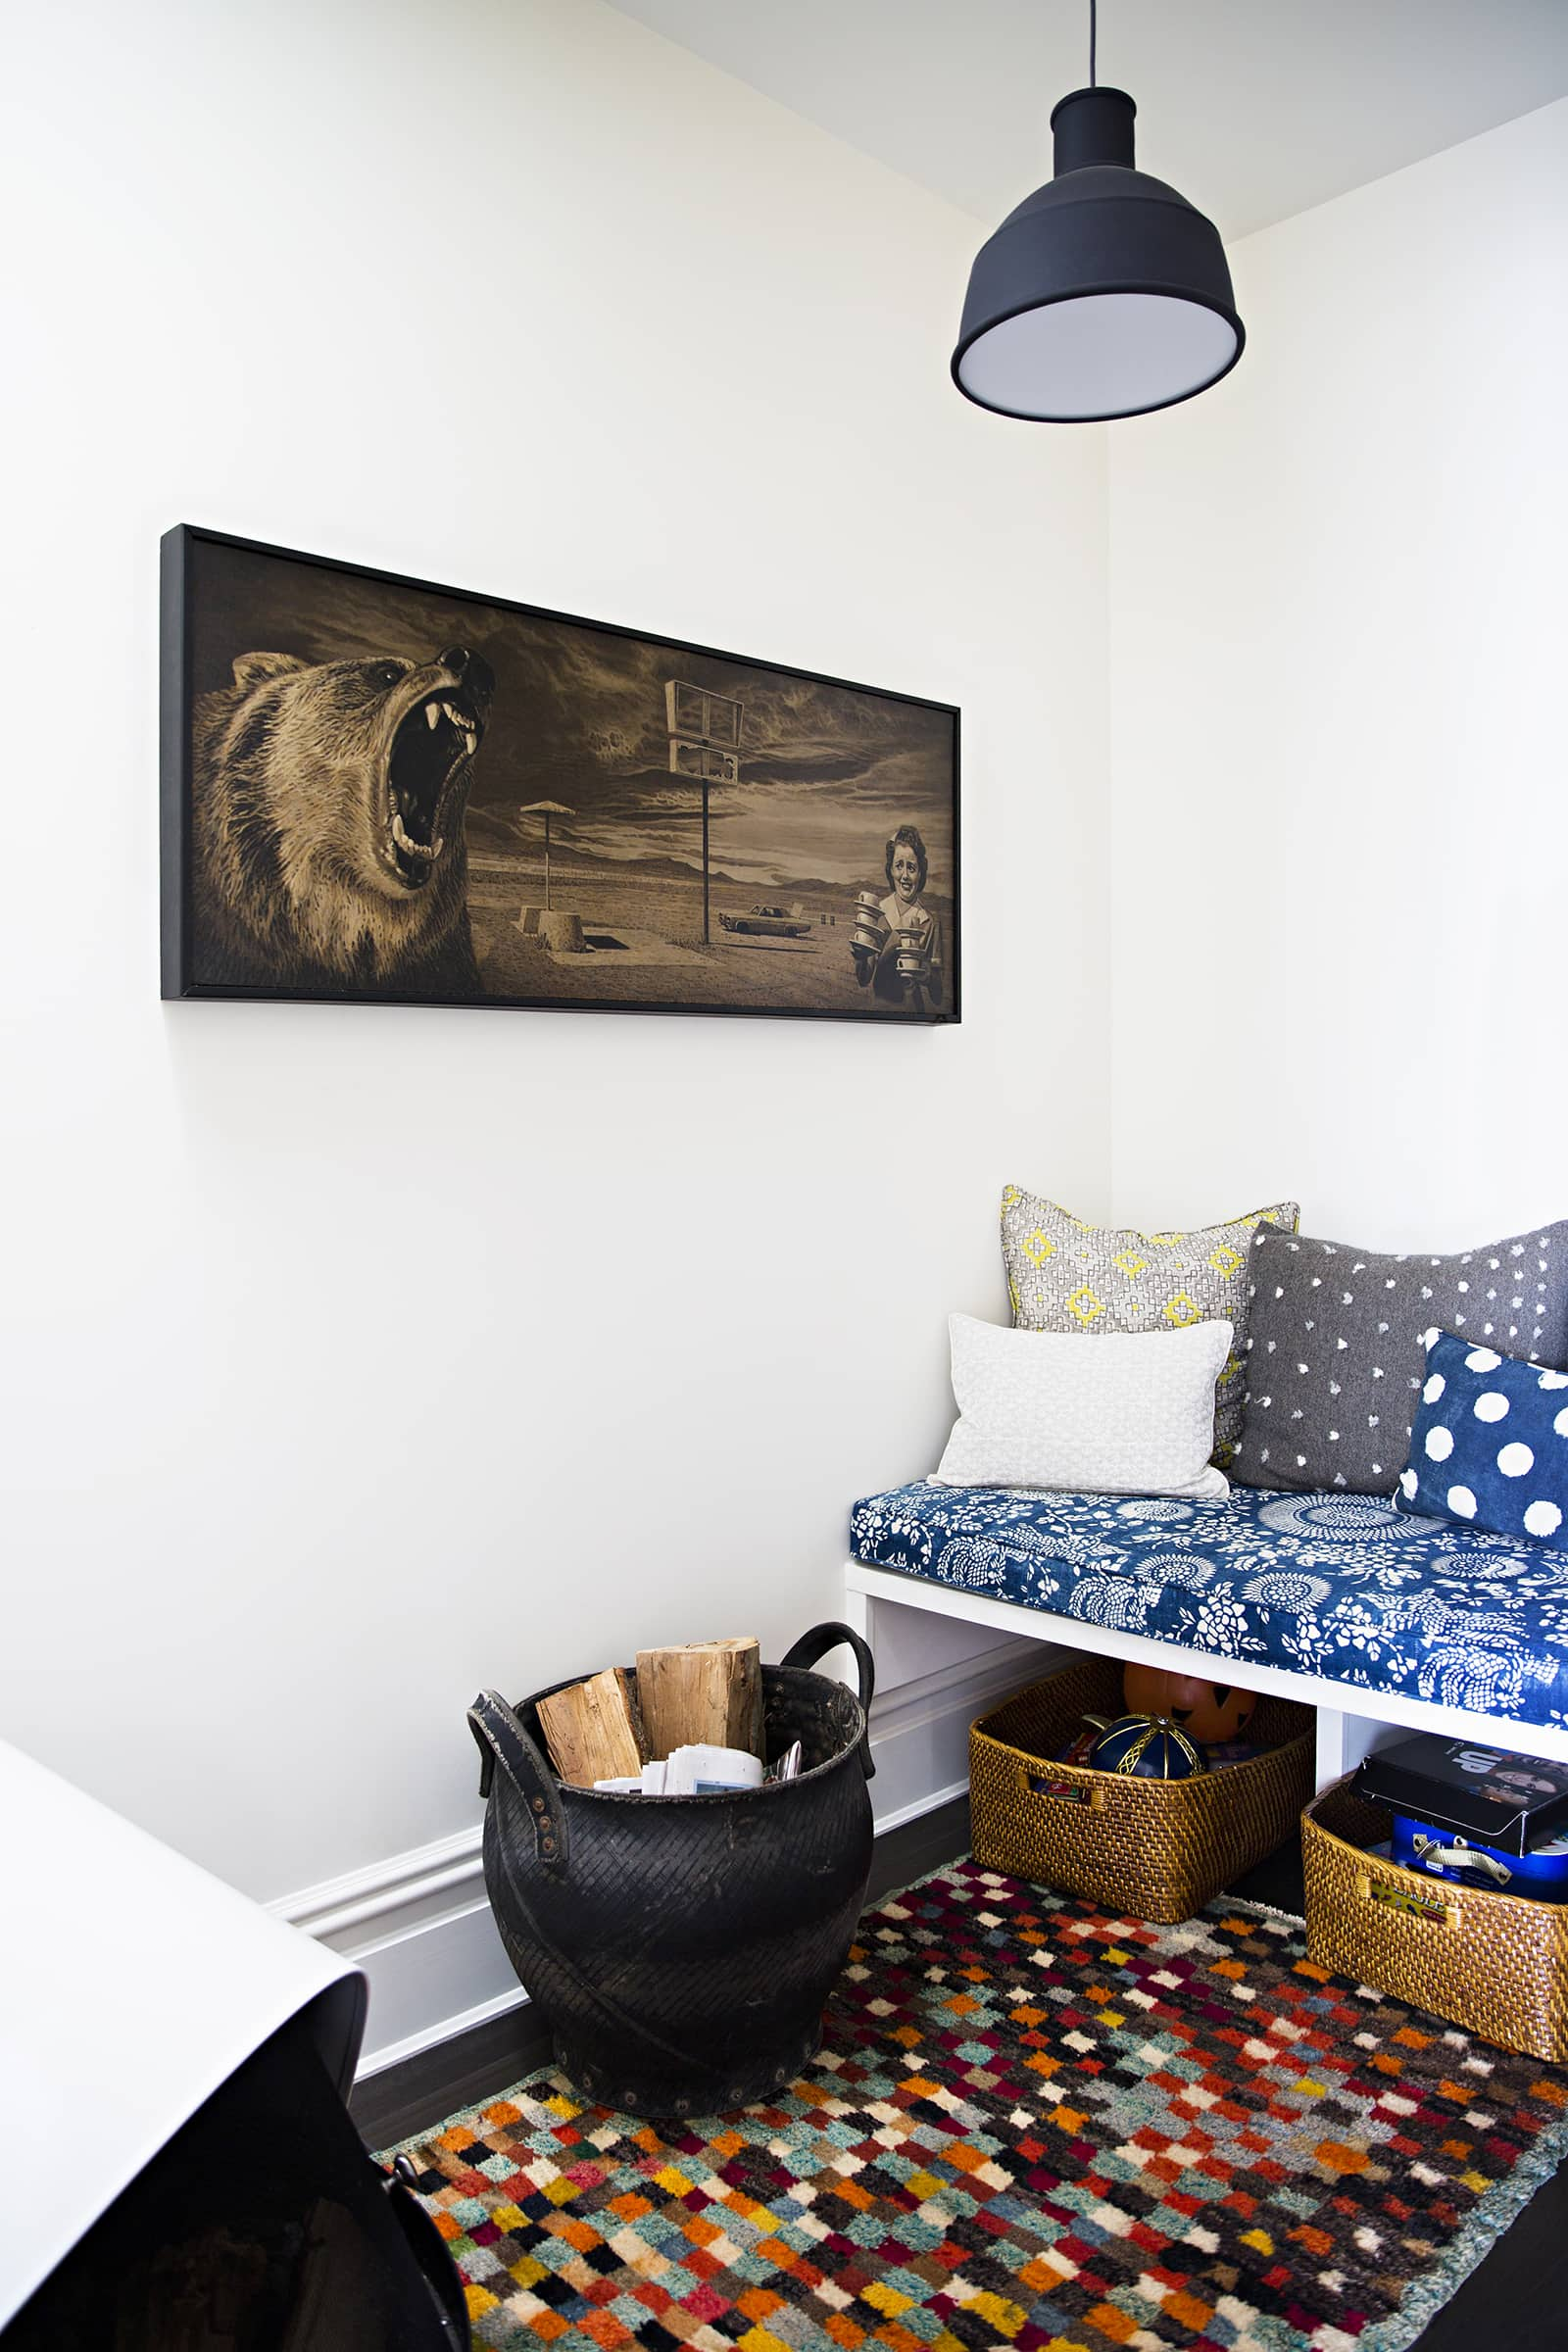 The Wallpaper-Covered Brooklyn Home of Studio Four NYC's Founder Kate